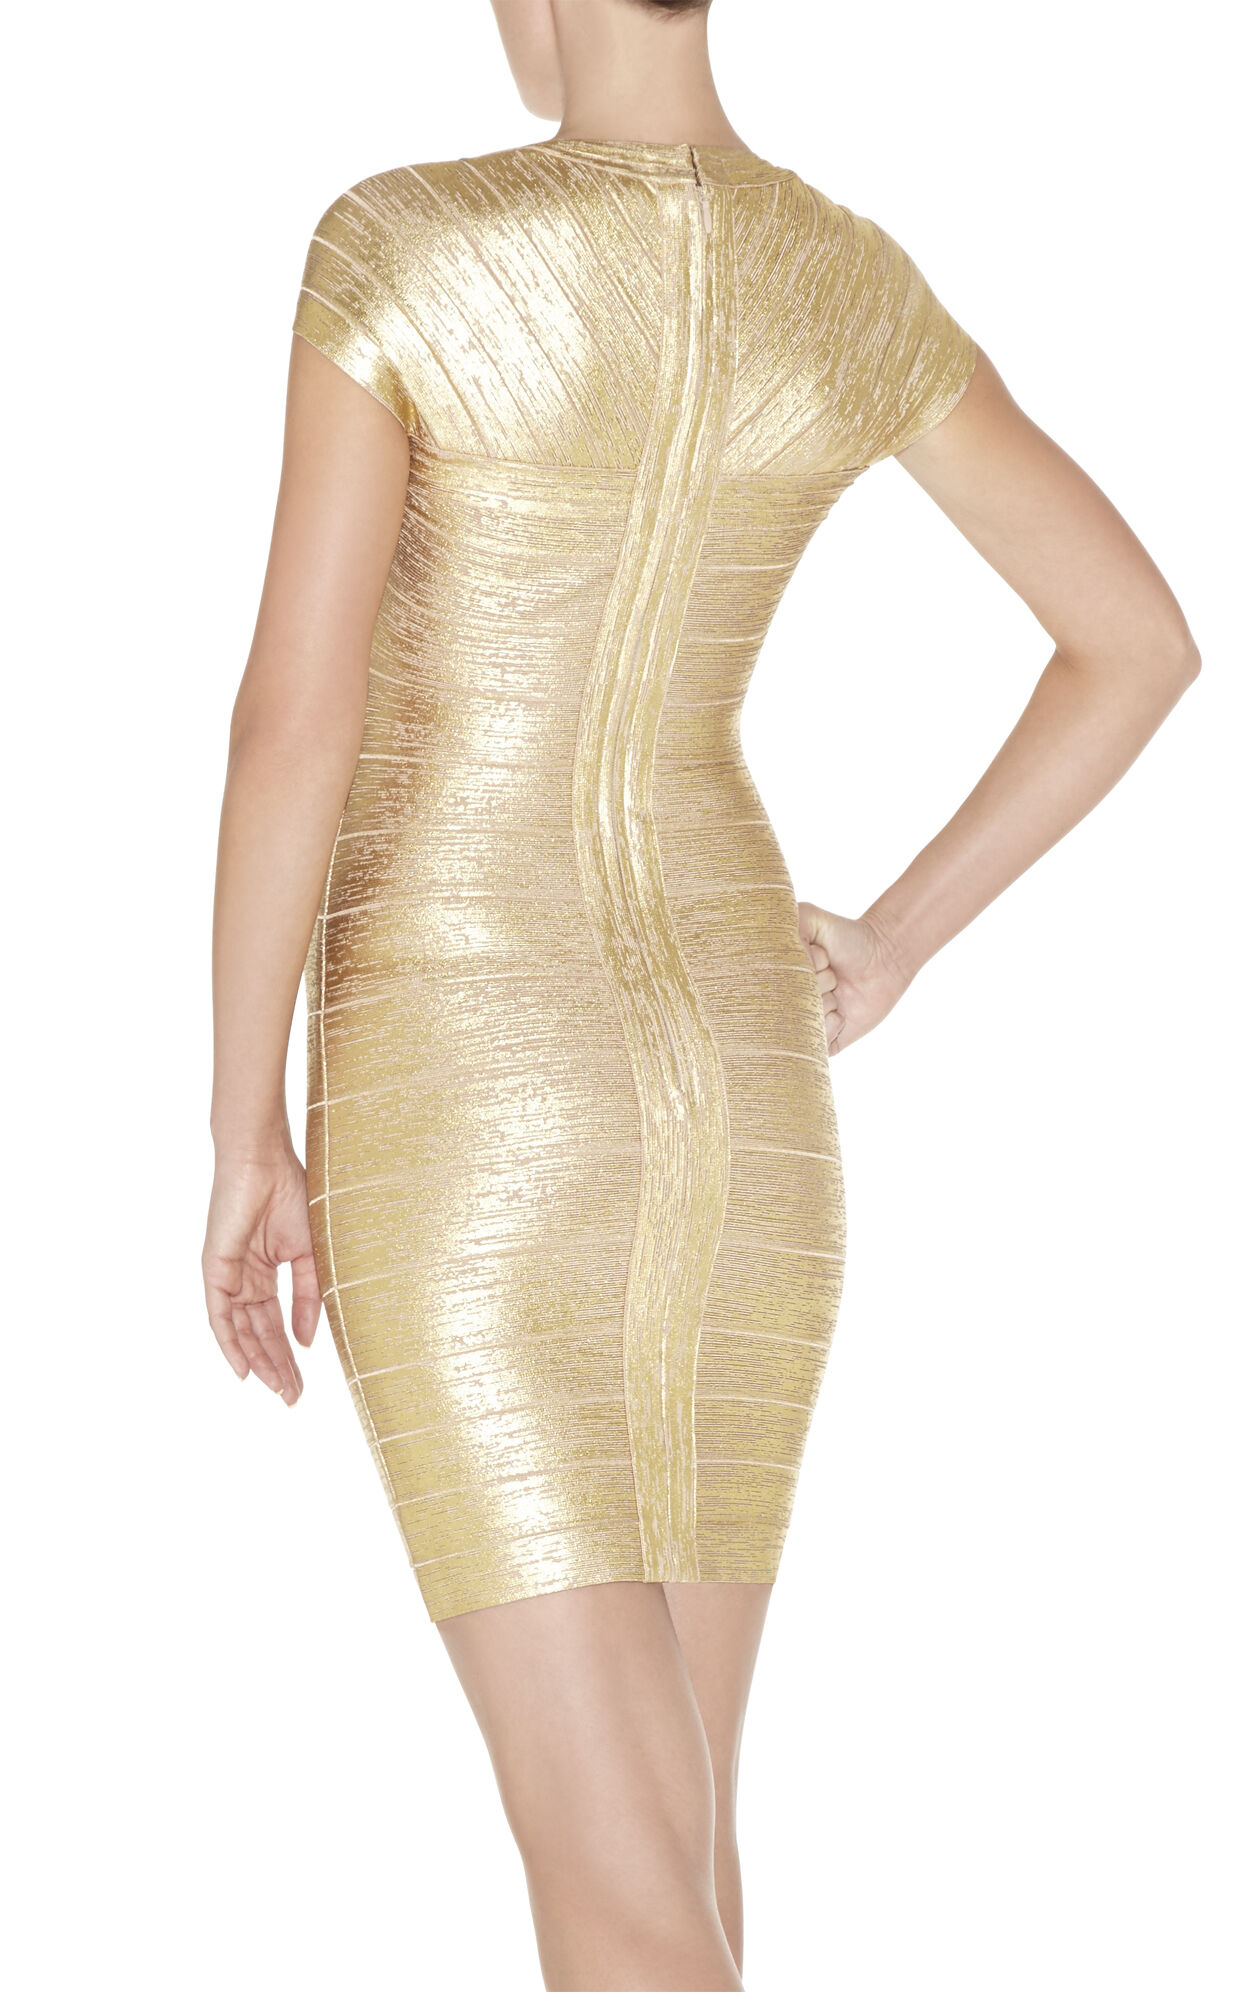 Tejana Woodgrain Foil-Print Dress